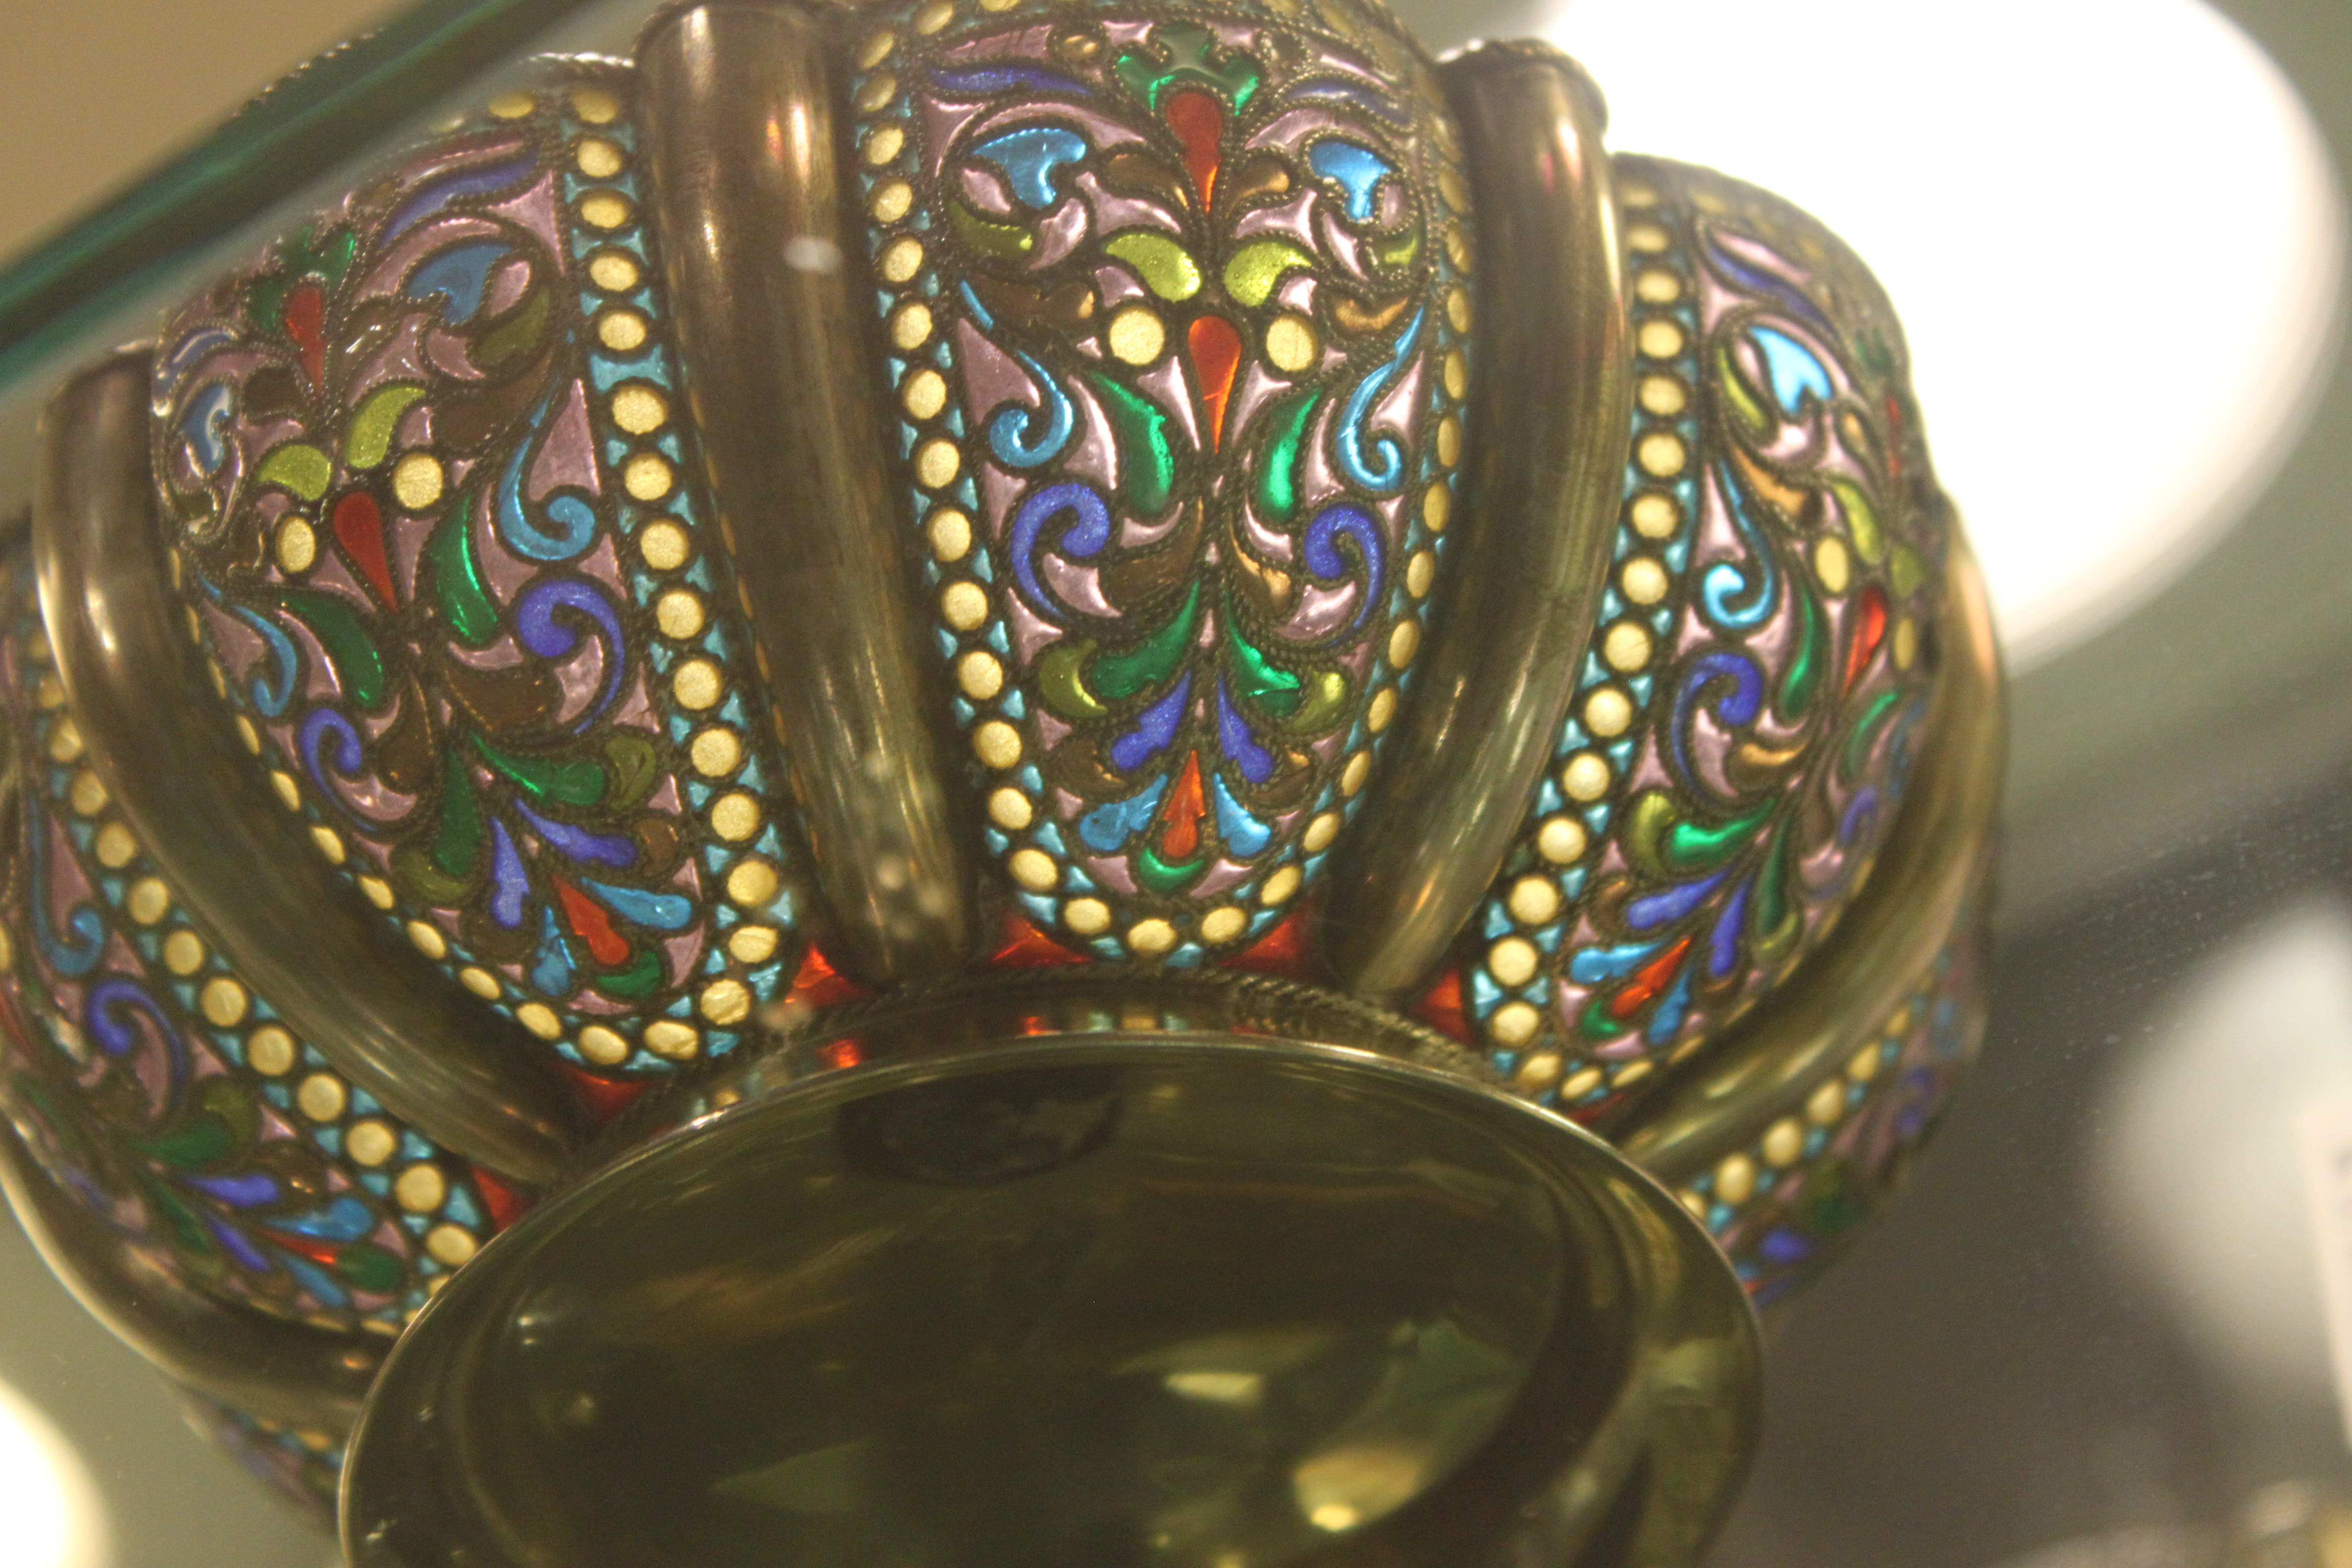 A filigree bowl of gold, silver and translucent enamel resembling stained glass purchased in Moscow.